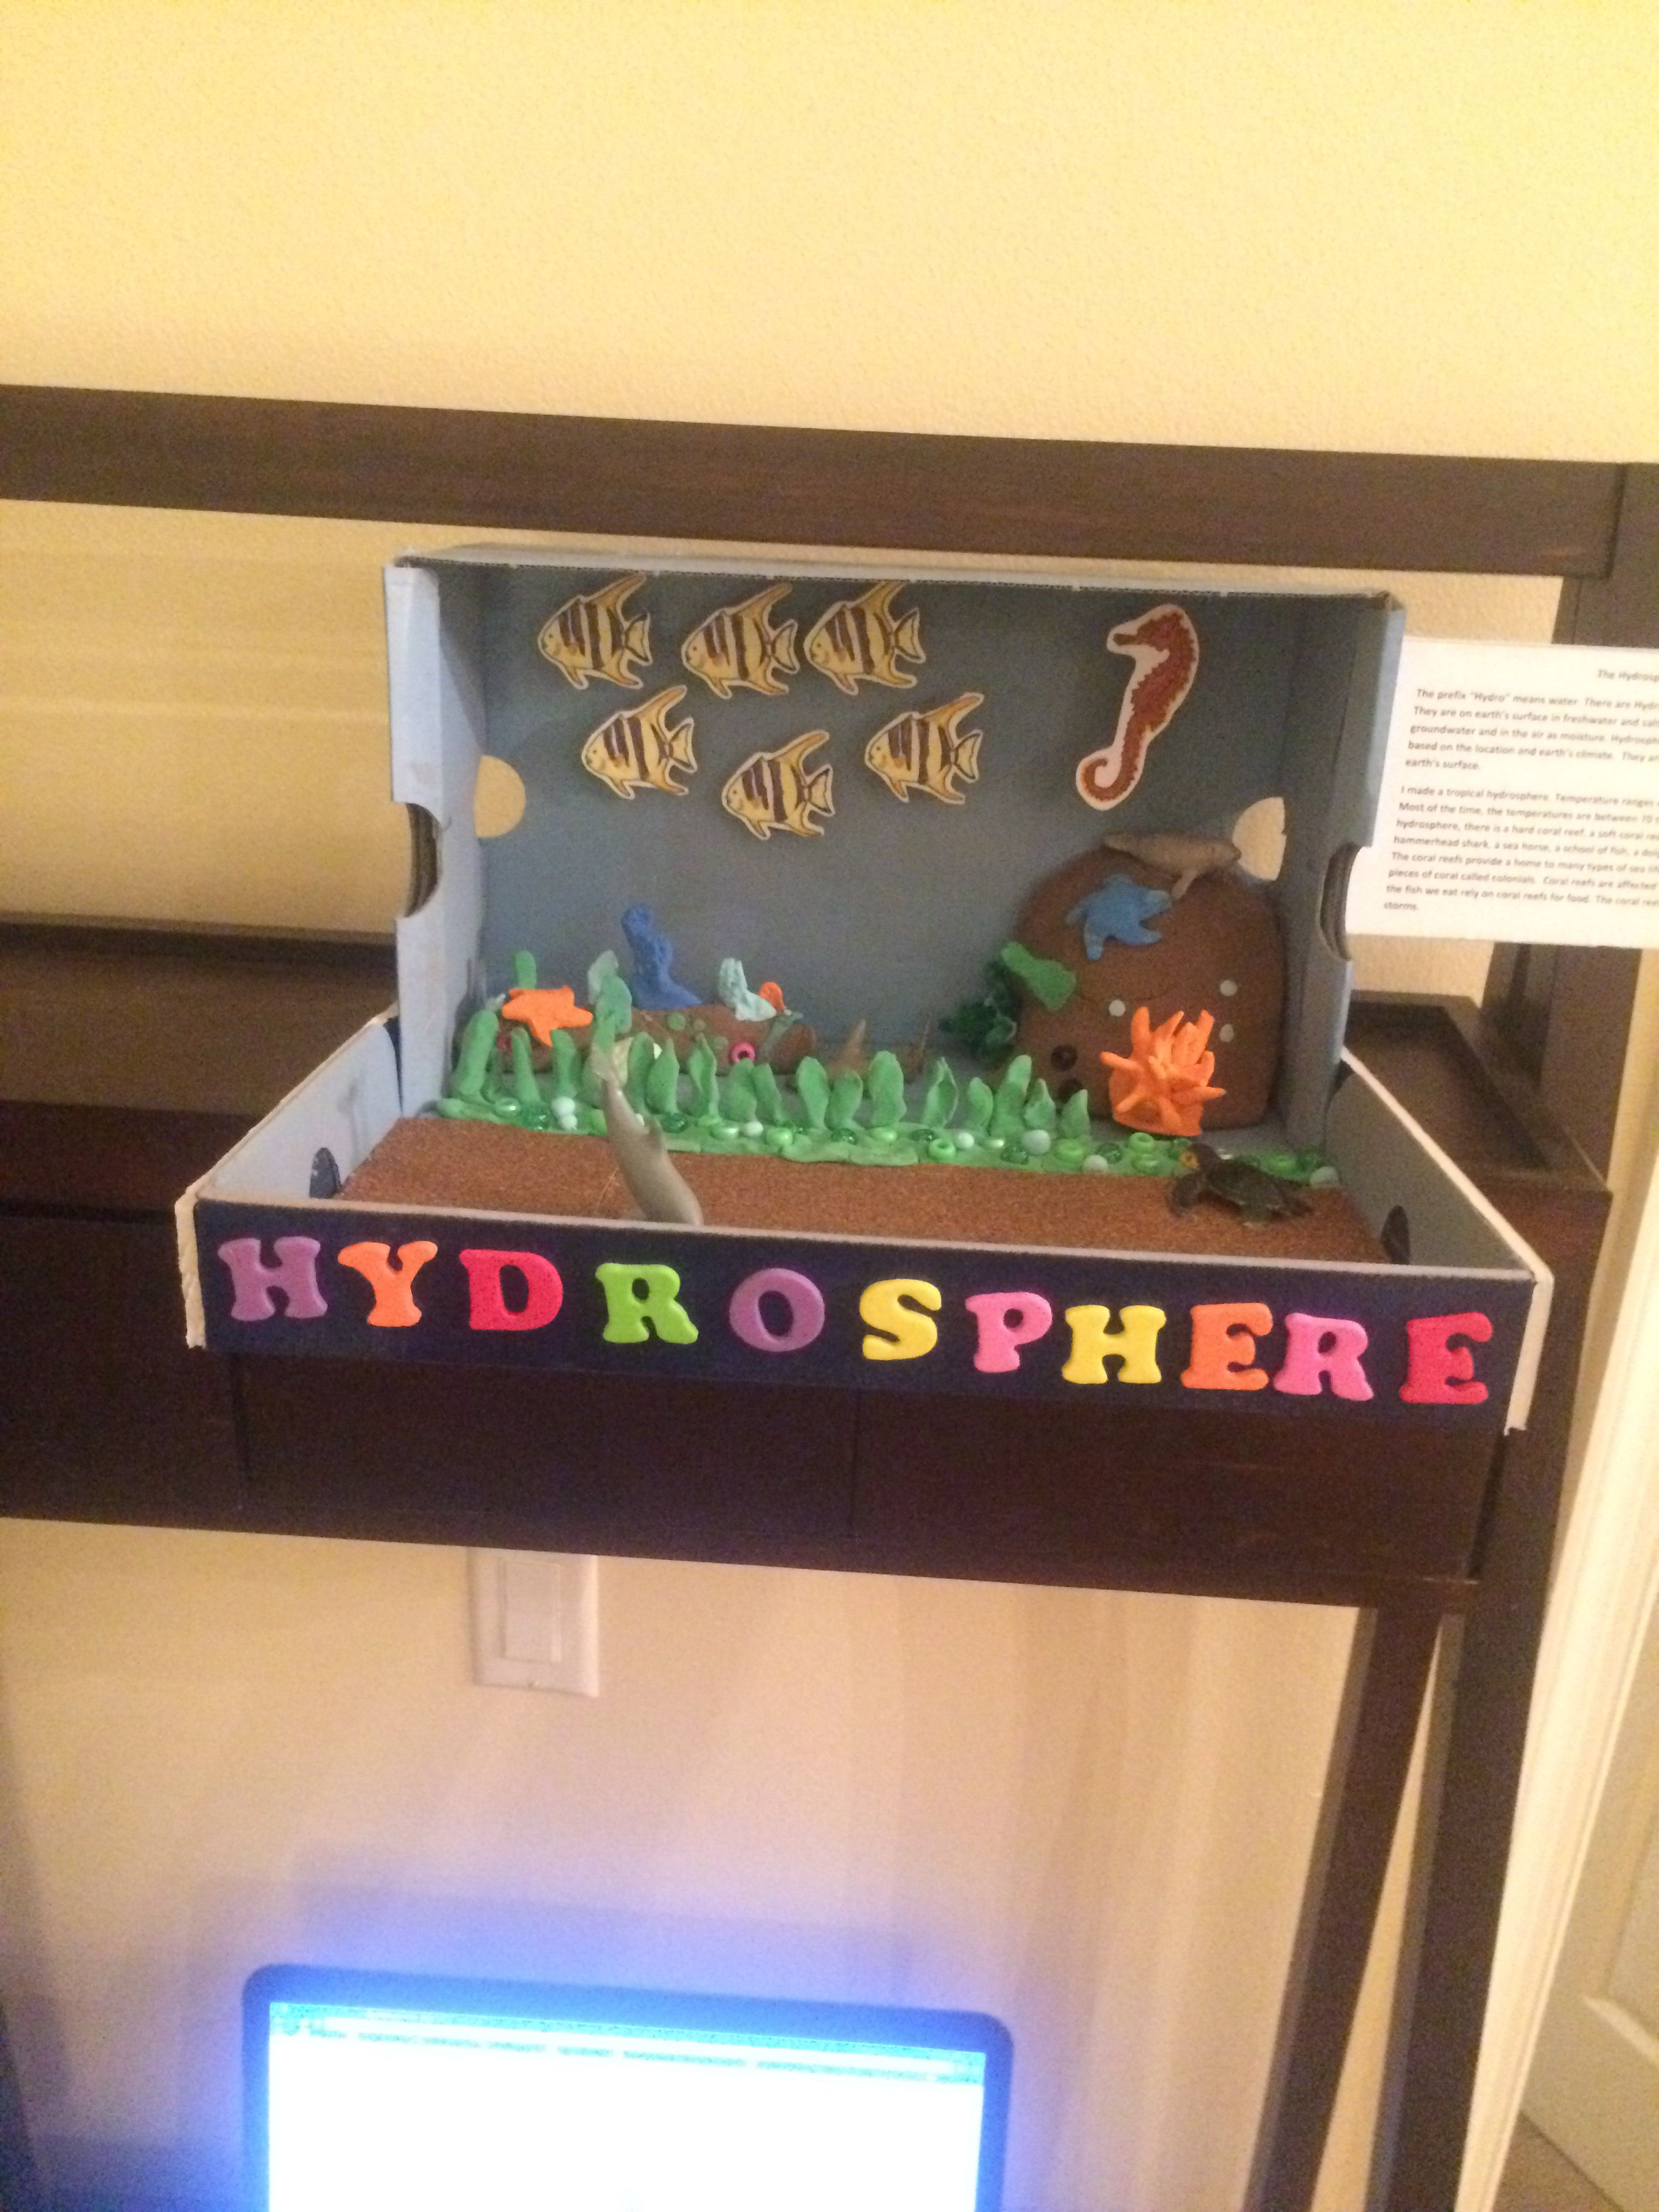 6th grade hydrosphere project | Hydrosphere | Pinterest ...